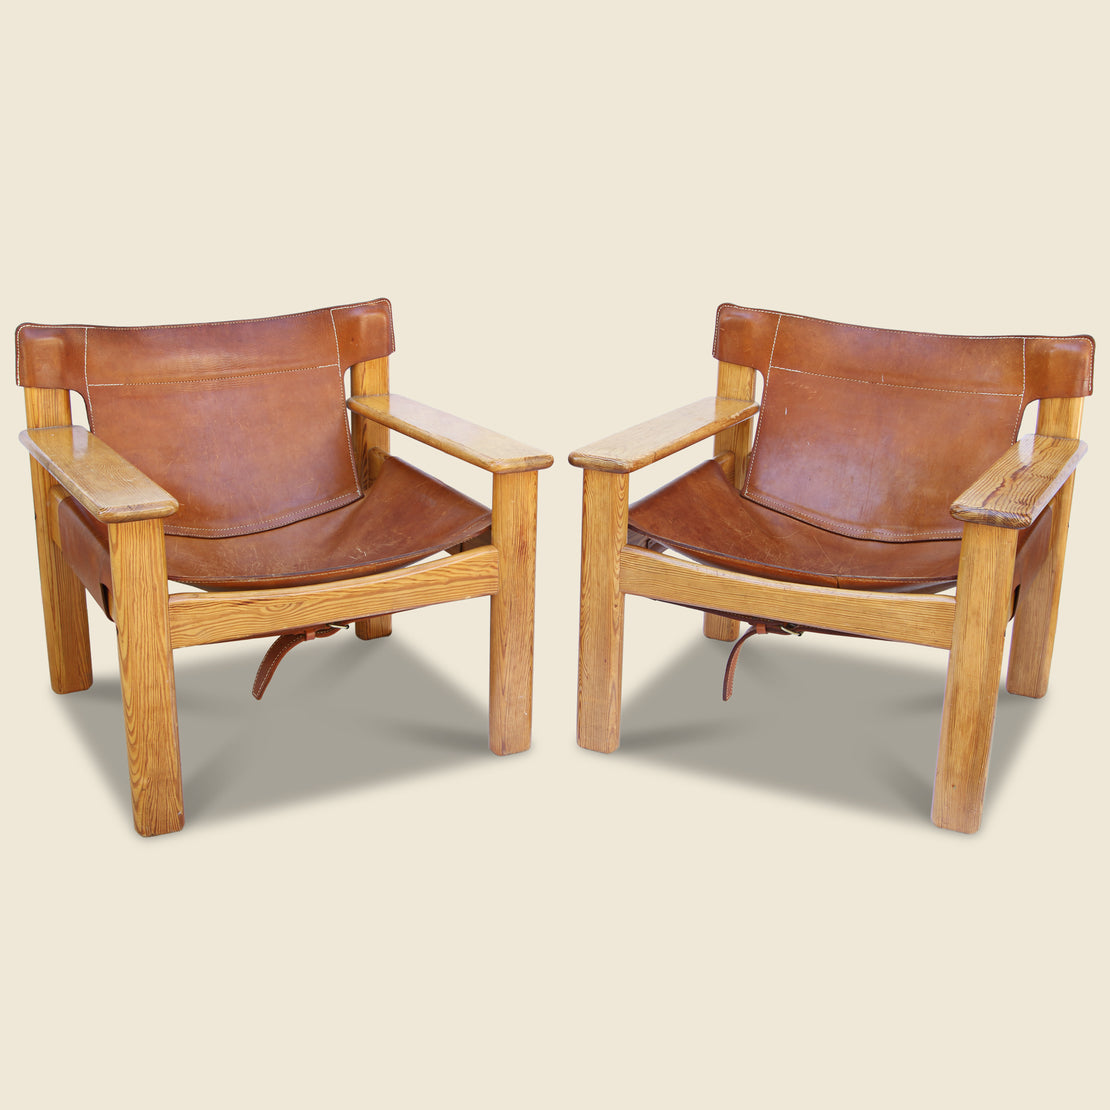 Vintage Danish Leather & Pine Lounge Chairs